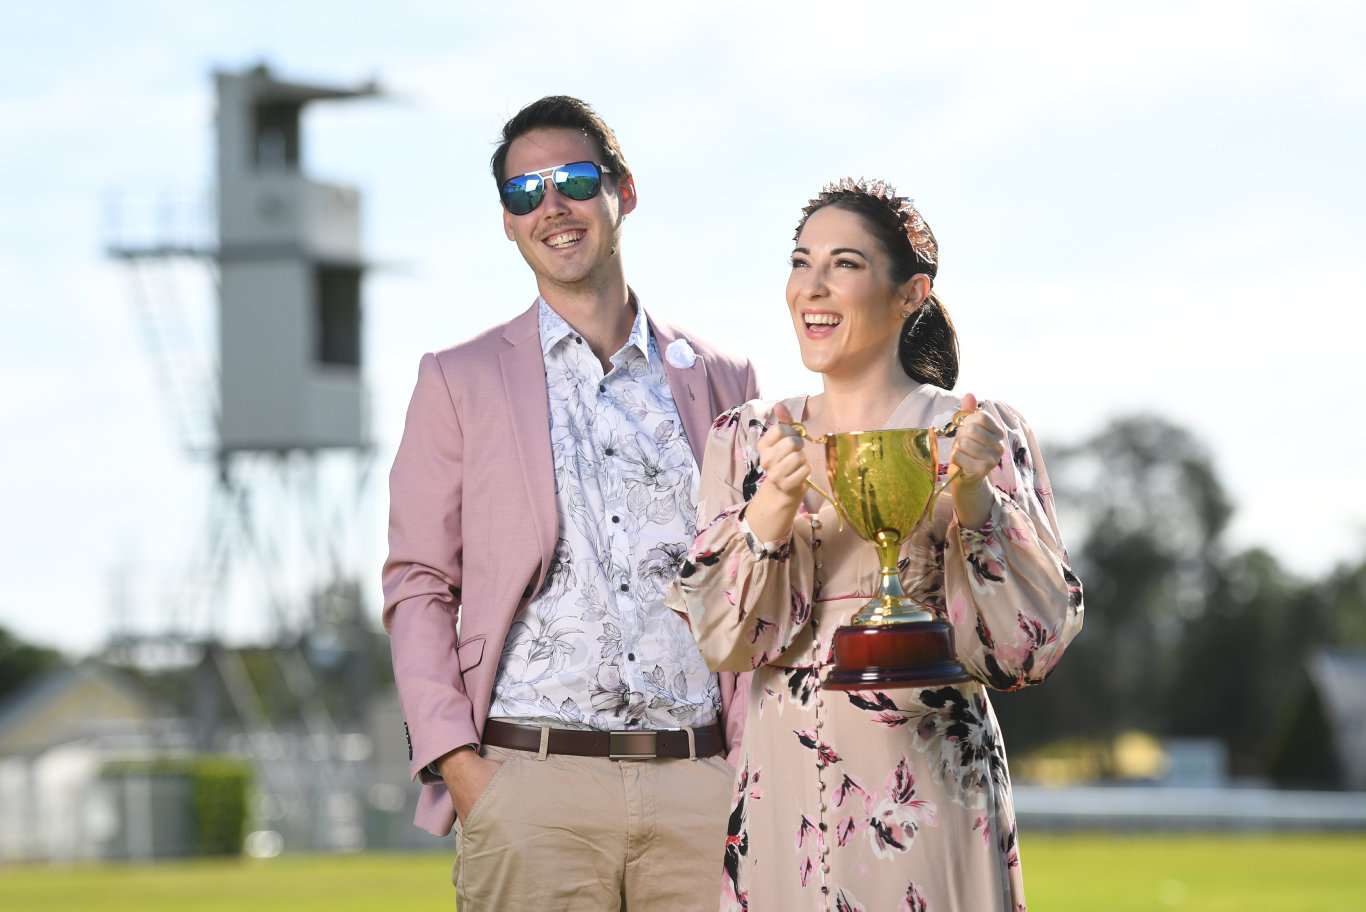 Lauren Roche and Liam Schade model fashions available from Orion ahead of the Ipswich Cup Fashions on the Field.